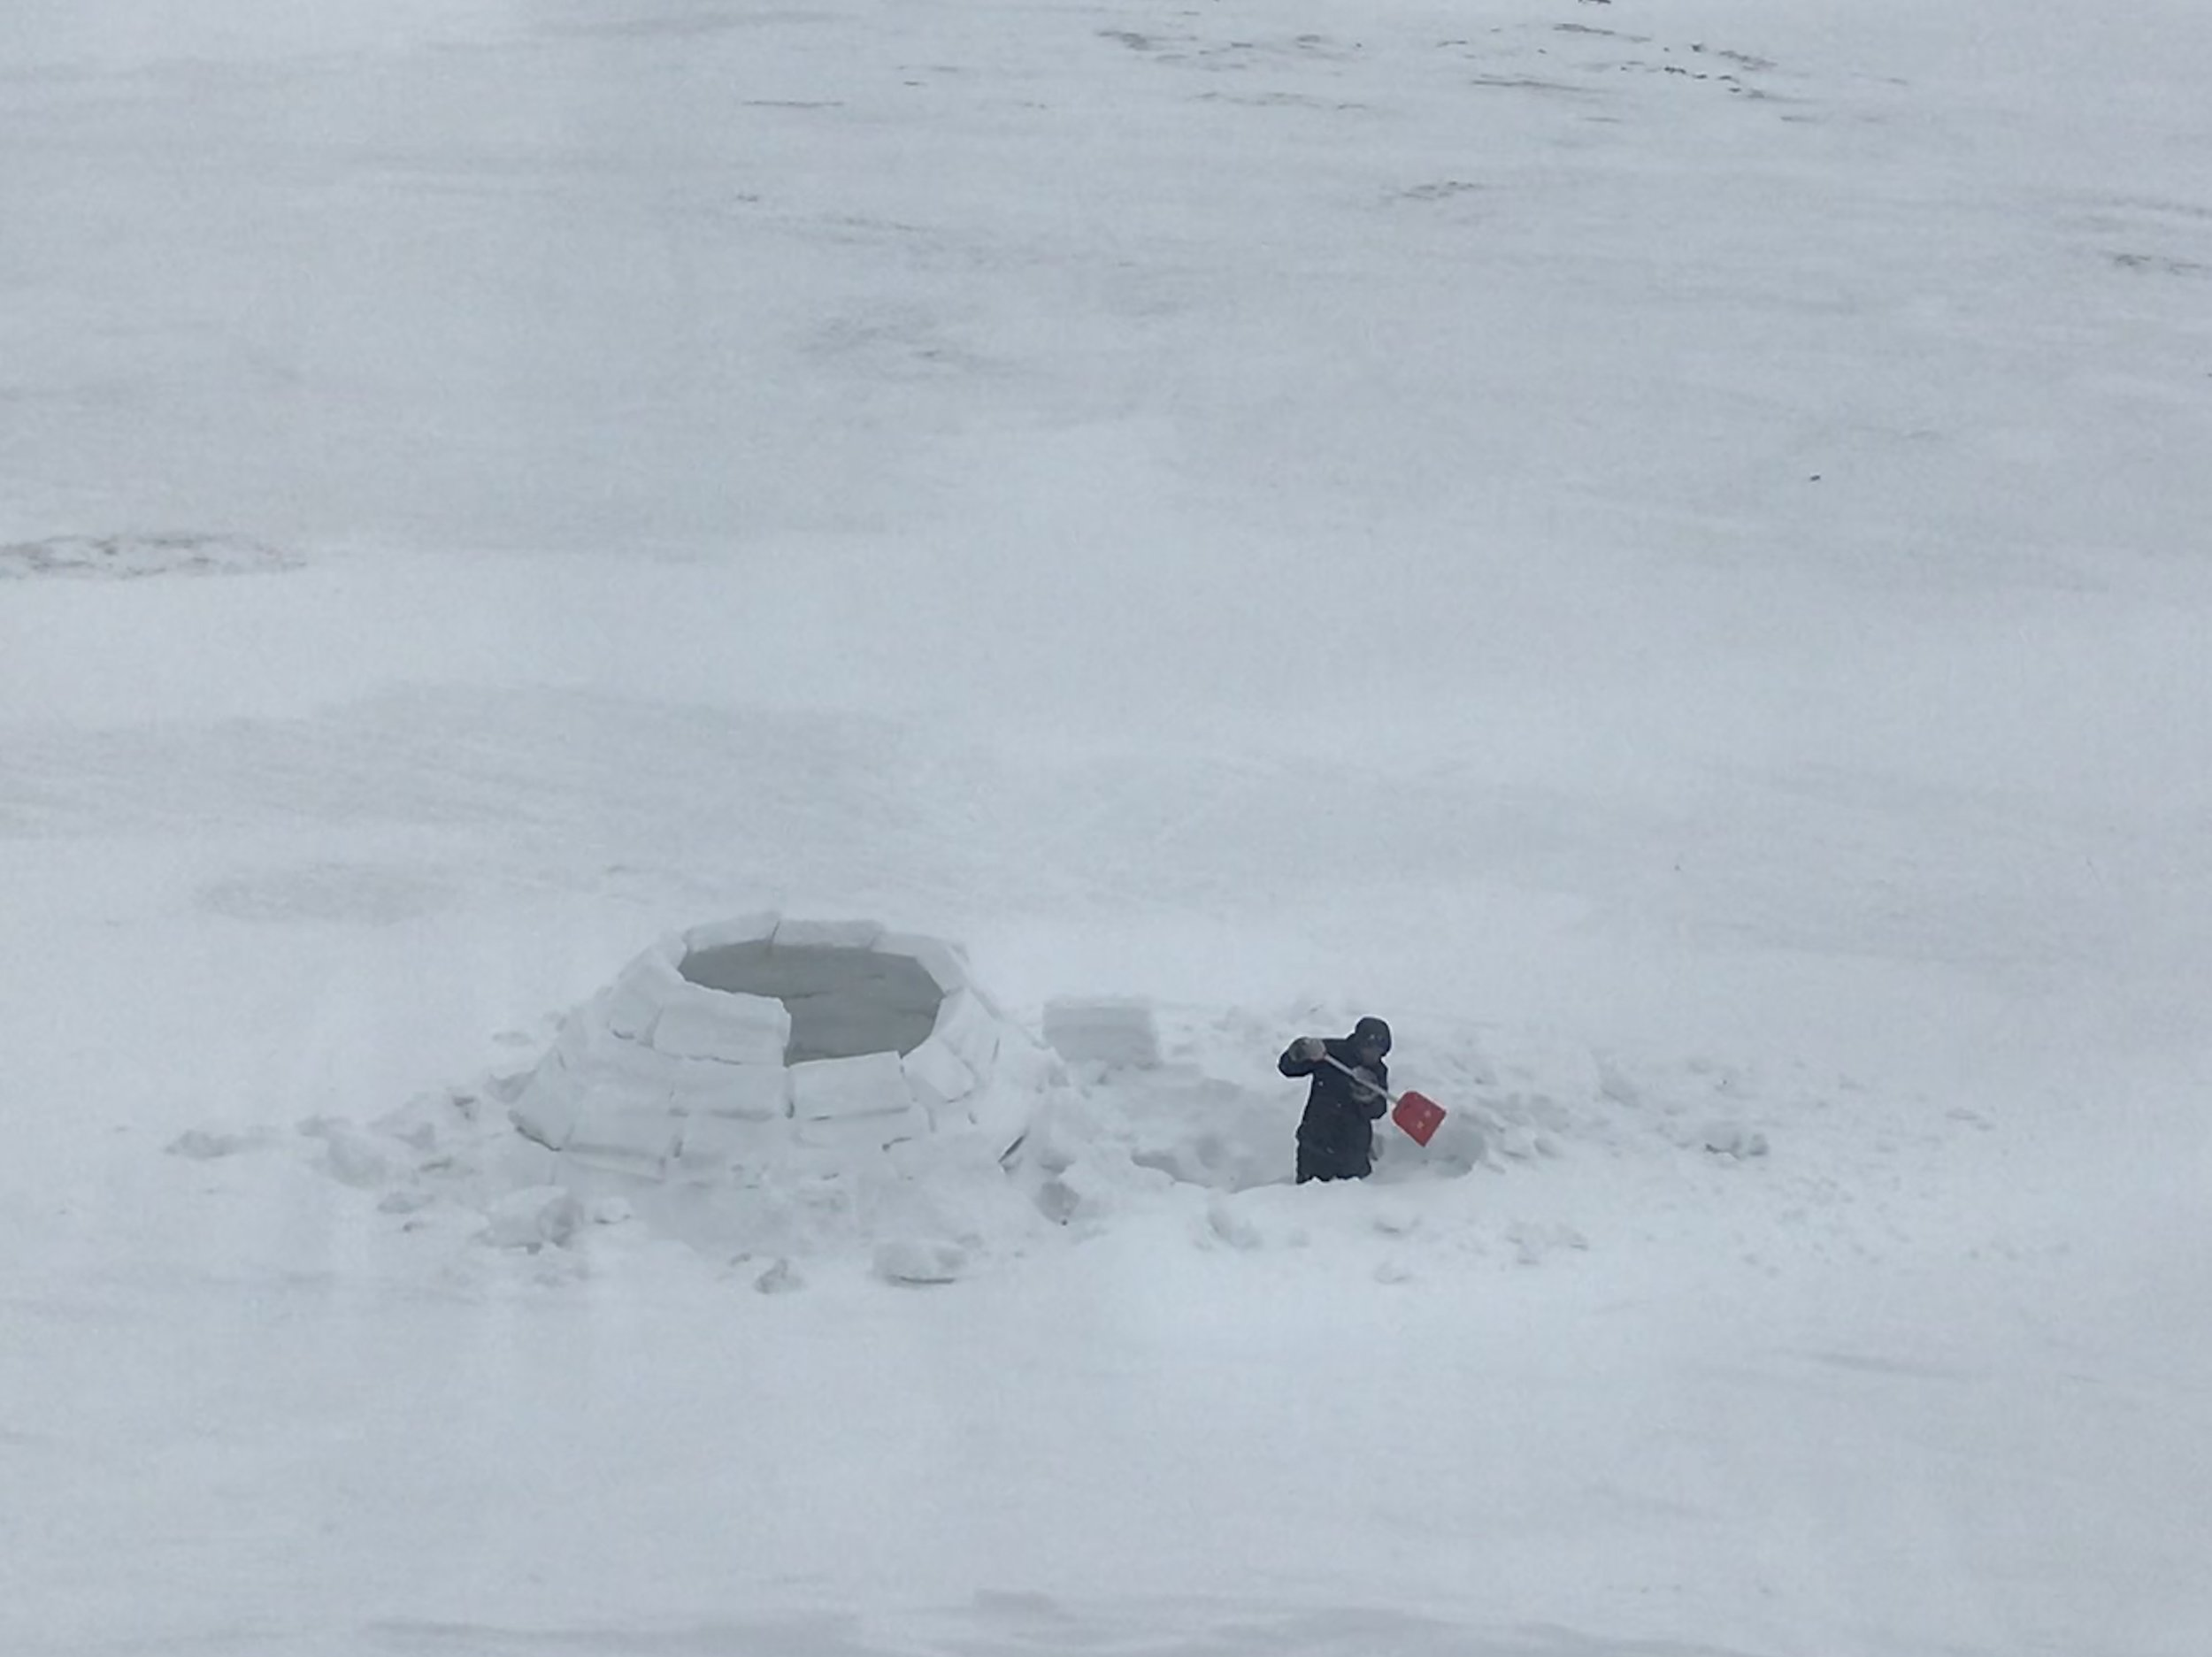 Mark keeps working on the igloo!